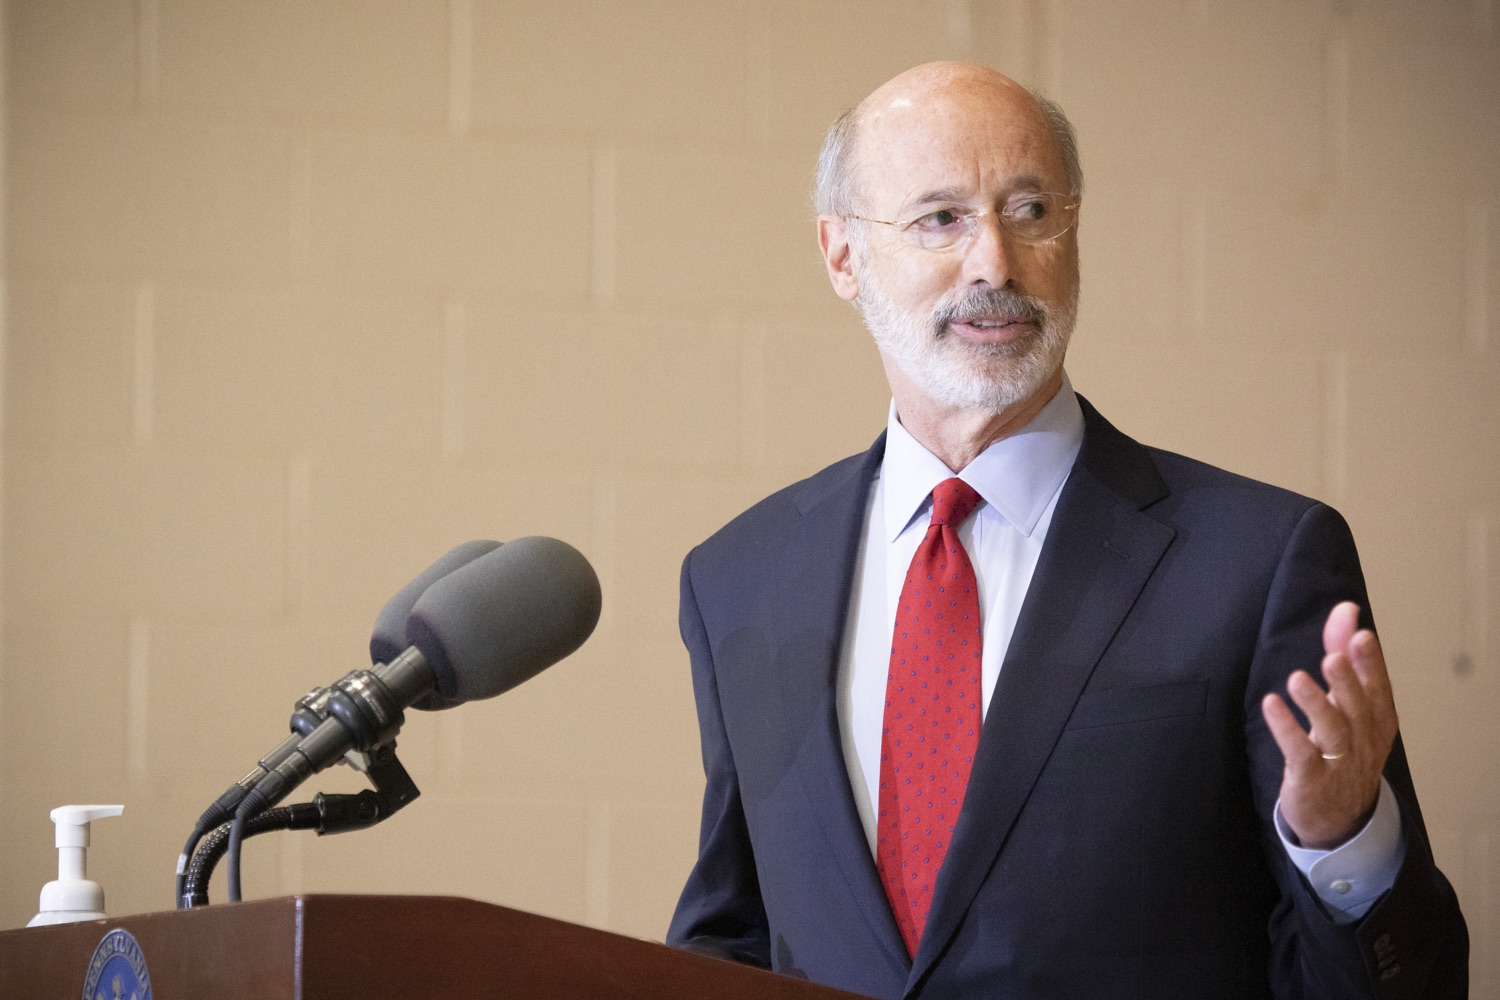 "<a href=""https://filesource.wostreaming.net/commonwealthofpa/photo/18310_gov_adult_use_cannabis_dz_013.jpg"" target=""_blank"">⇣ Download Photo<br></a>Governor Tom Wolf speaks to the press.Governor Tom Wolf visited The Mountain Center in Tobyhanna, Monroe County today to talk about the economic growth potential and restorative justice benefits of legalizing adult-use cannabis, something the state General Assembly has not yet done despite multiple requests from the governor and Lieutenant Governor John Fetterman to take up legislation this fall.  Tobyhanna, PA  October 13, 2020"